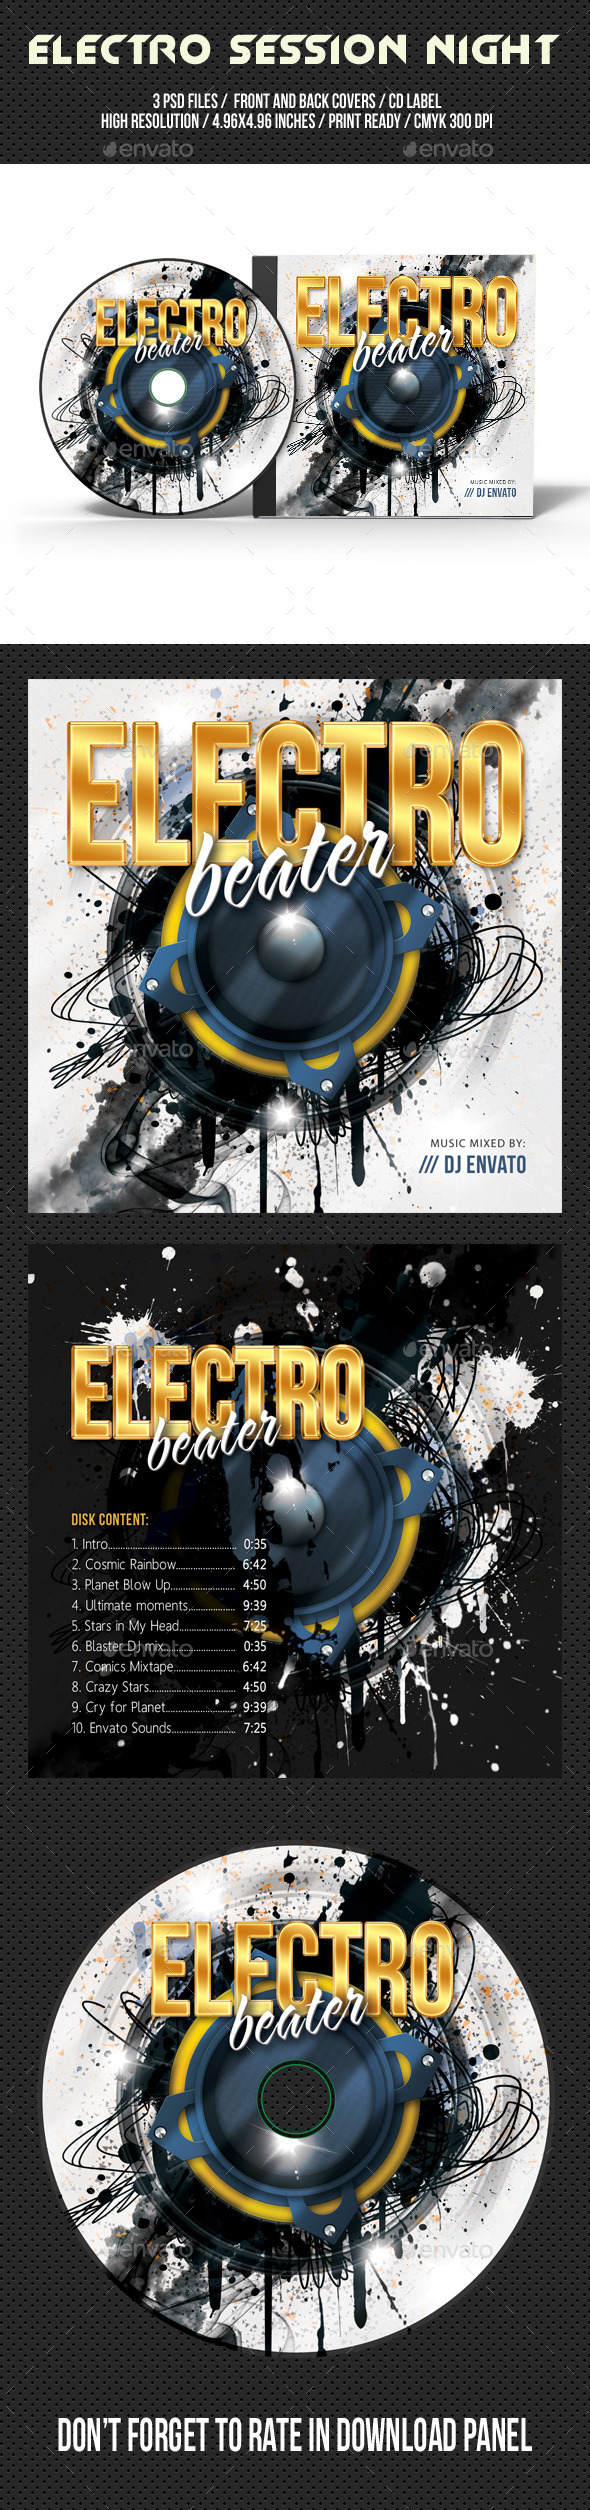 Electro Session Night Party CD Cover V02 - CD & DVD Artwork Print Templates